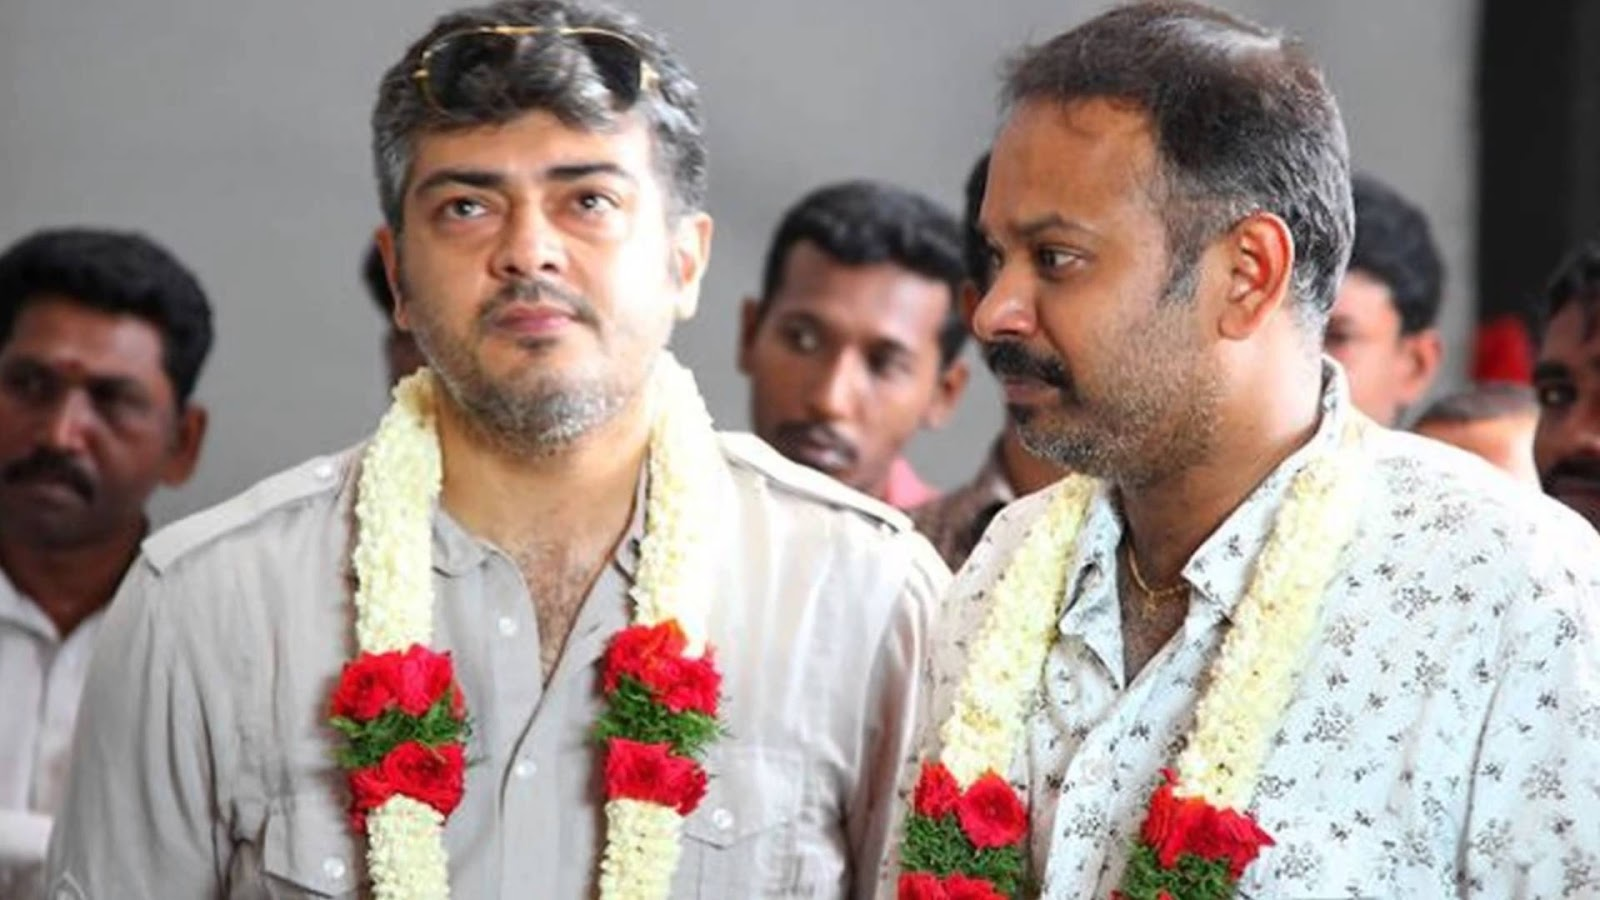 Thala Ajith and director Venkat Prabhu for Mankatha